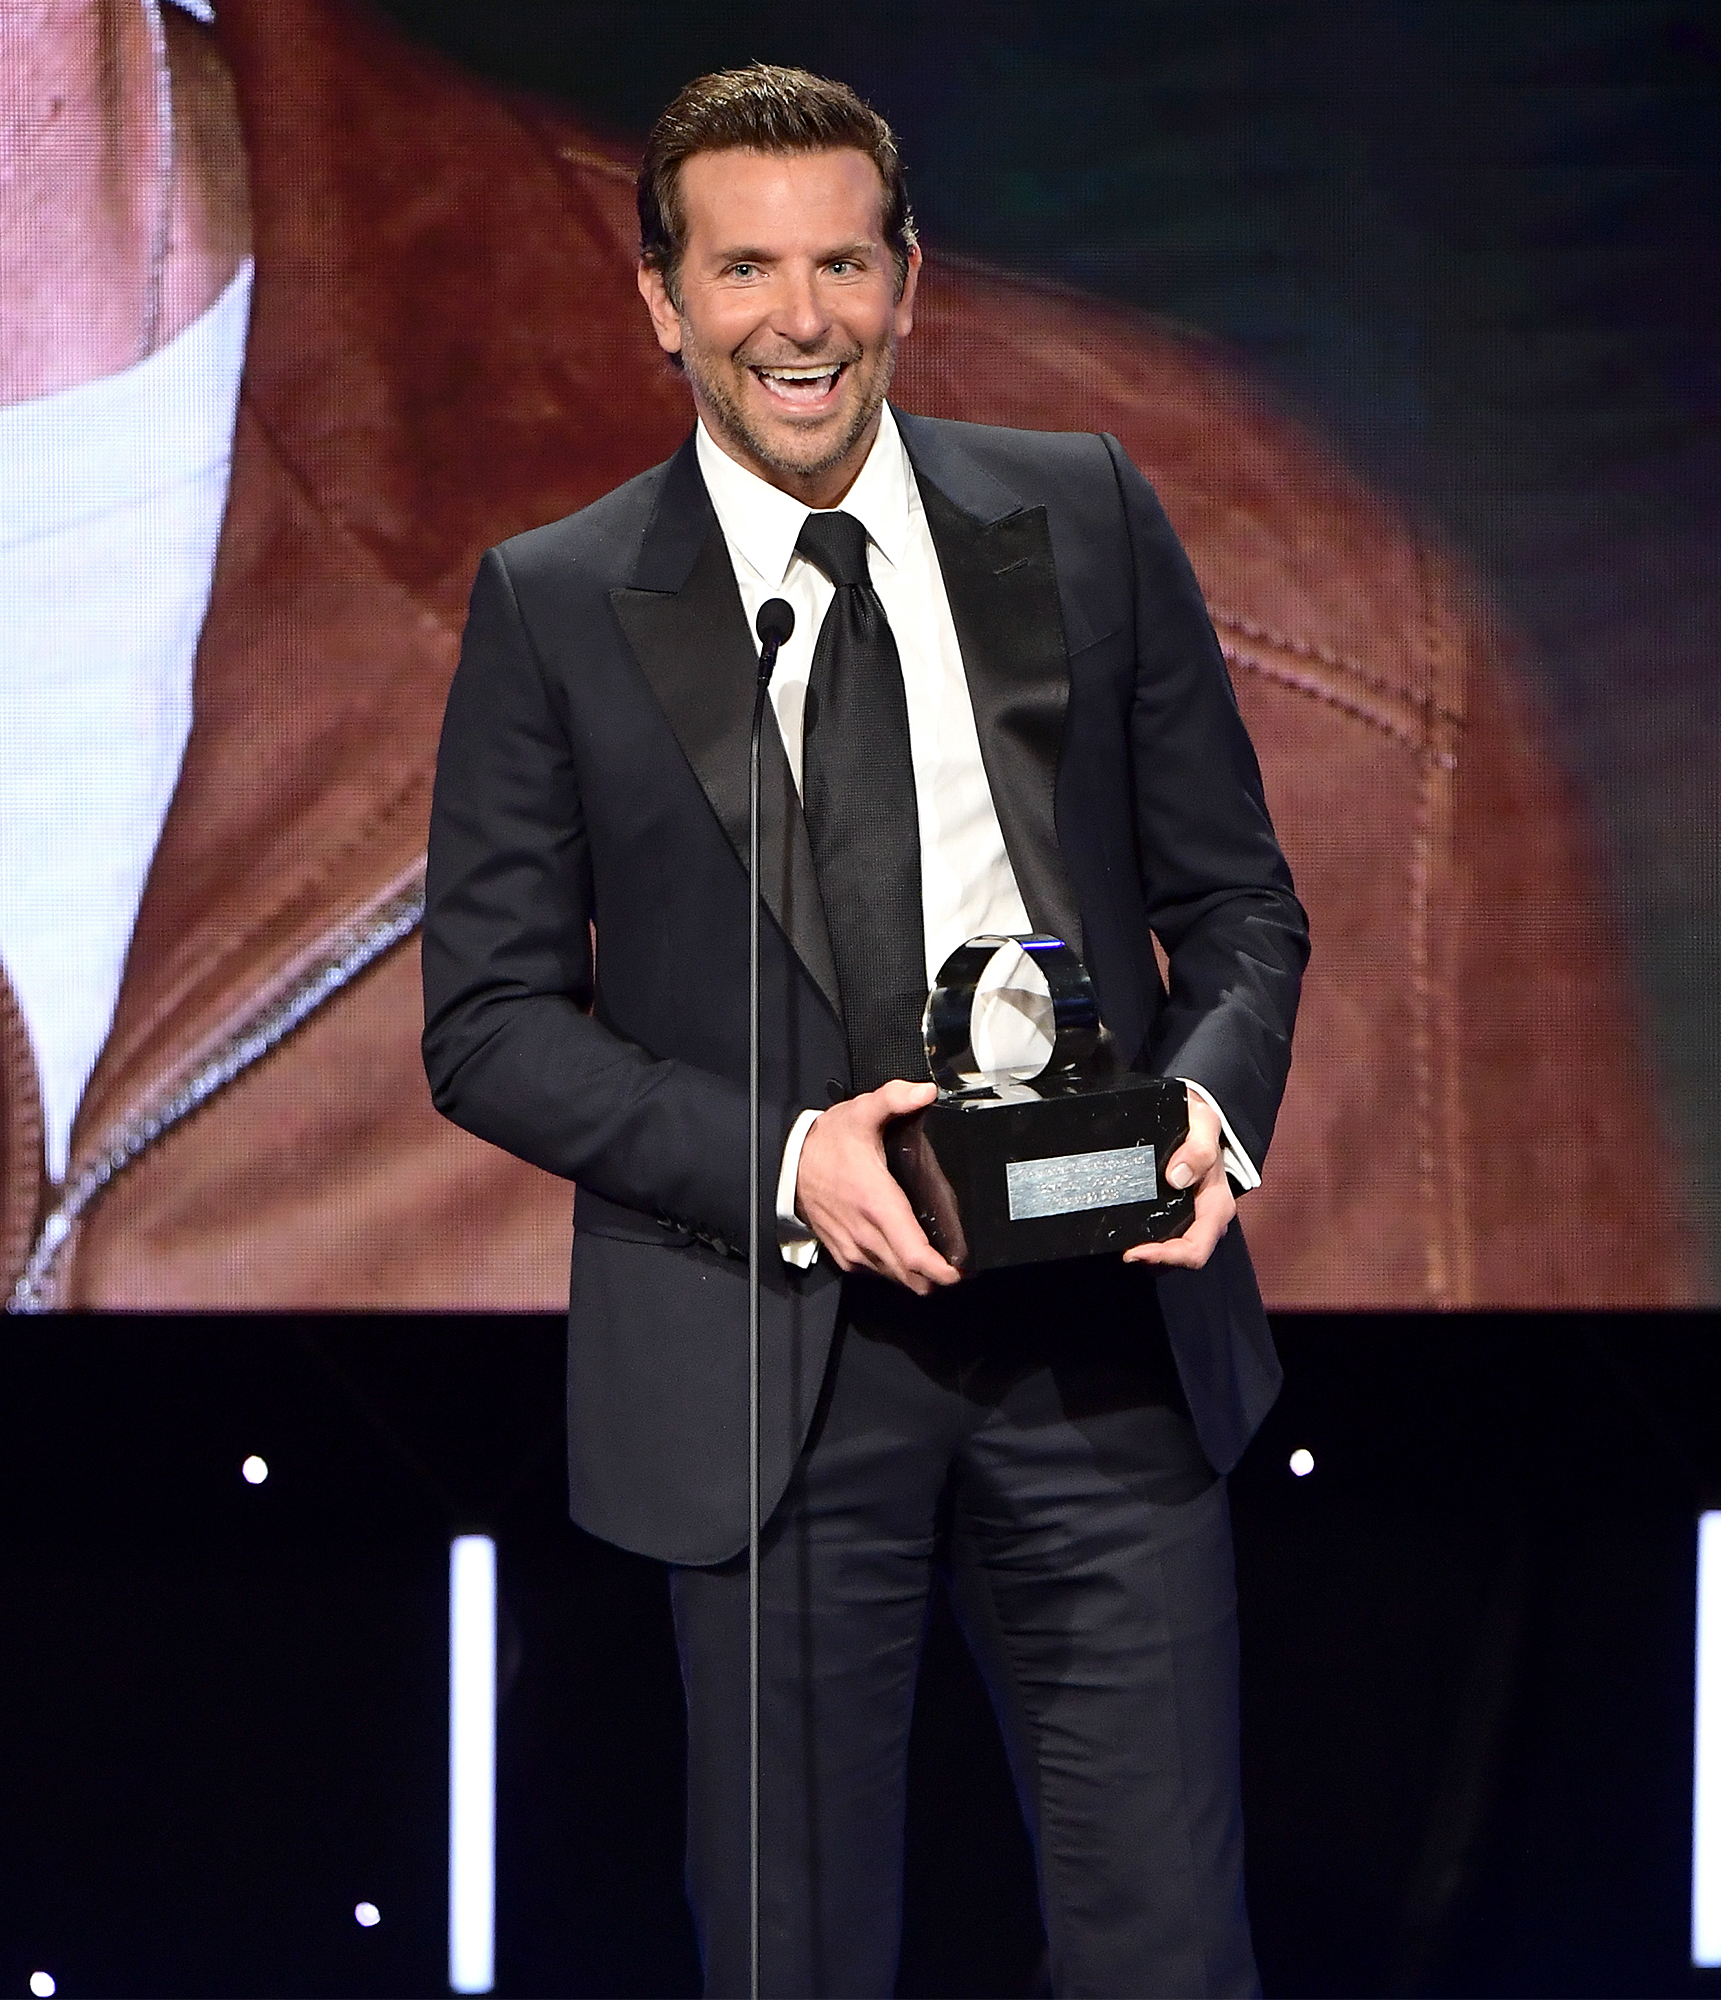 32nd American Cinematheque Award Presentation Honoring Bradley Cooper - Show